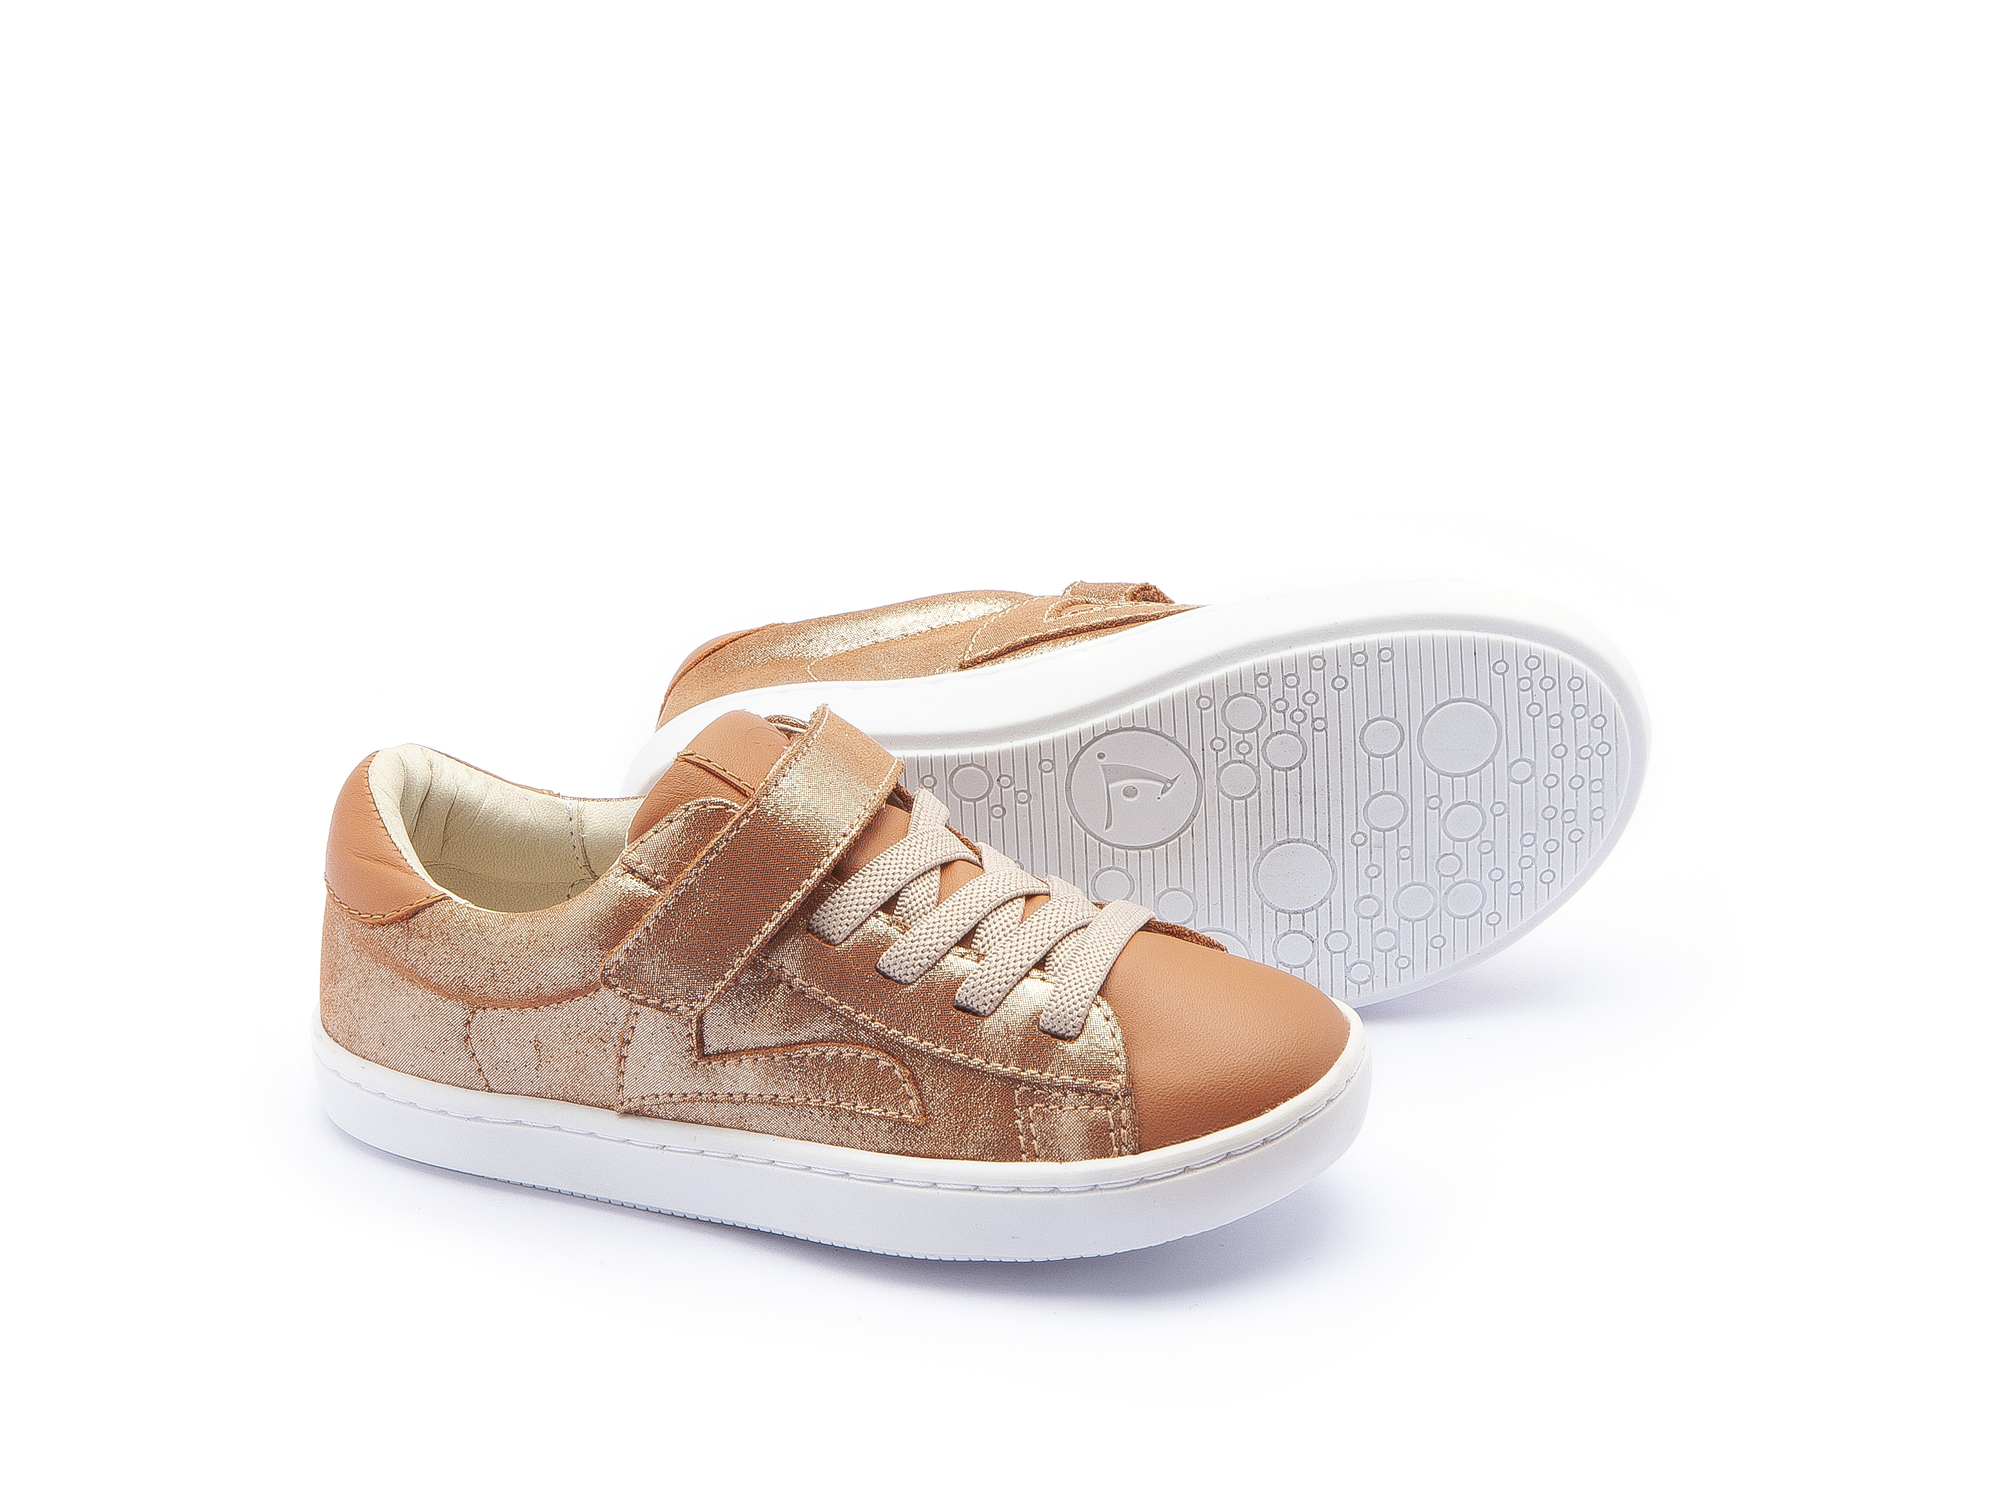 Sneaker Casual Little Skid Mica Gold/ Amendoim Toddler 2 à 4 anos - 2